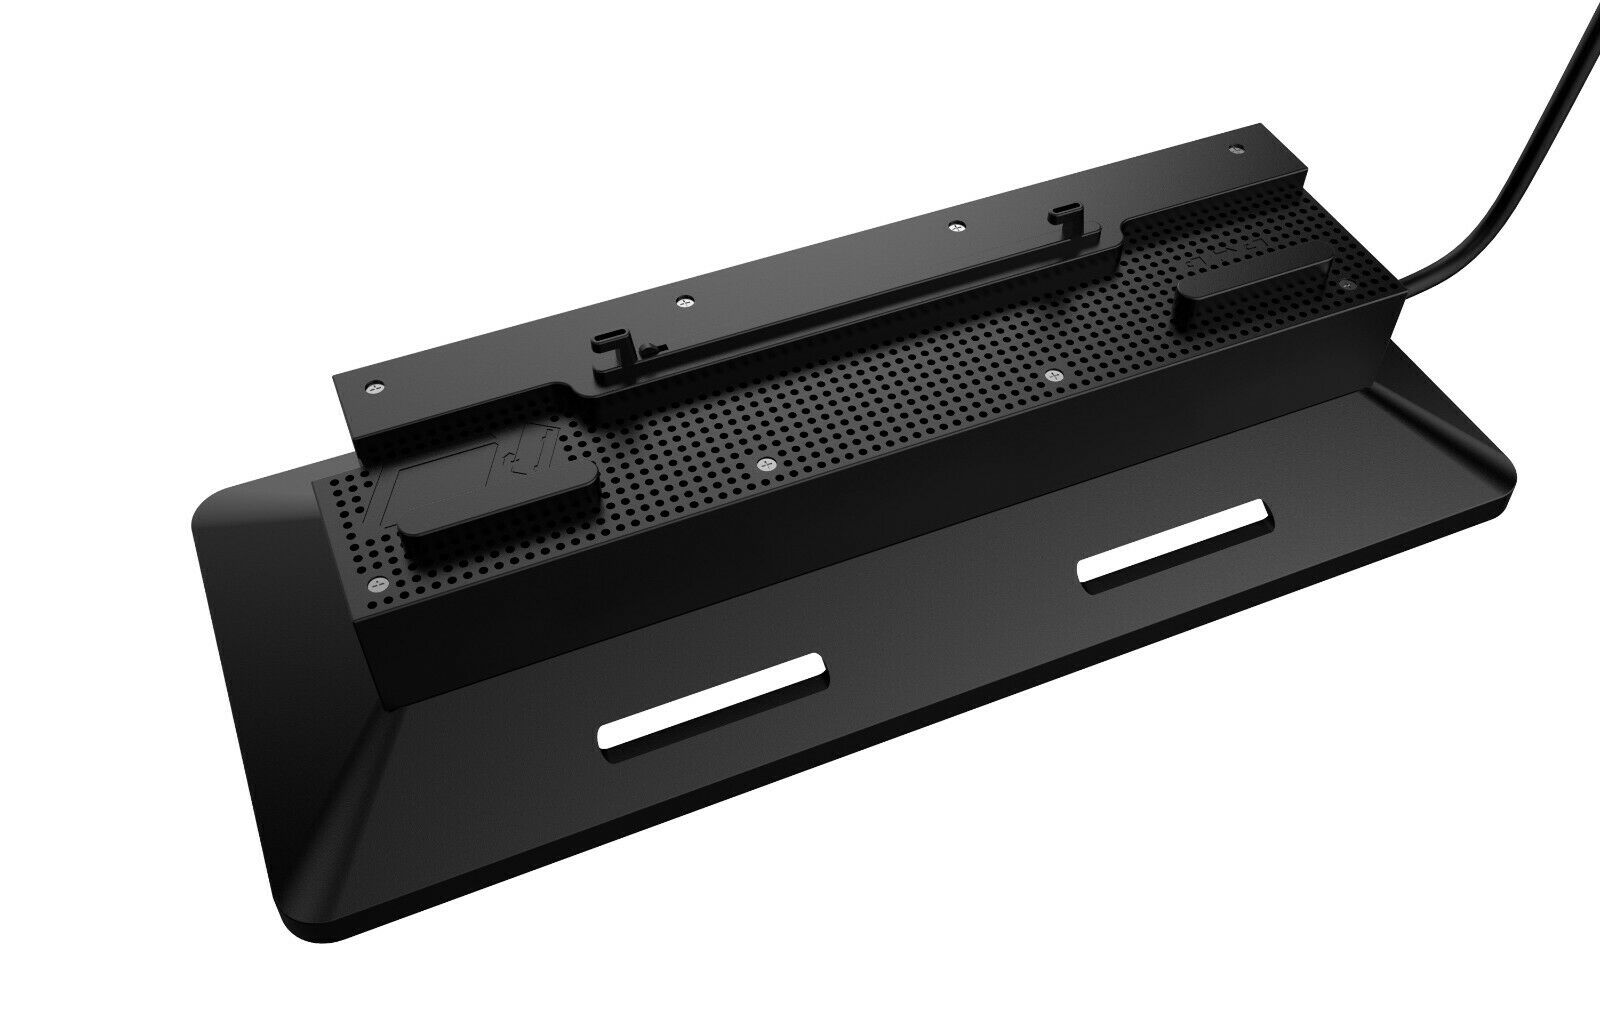 Vertical Cooling Ventilator Fan Stand for Xbox One X Console (Black) USB Powered